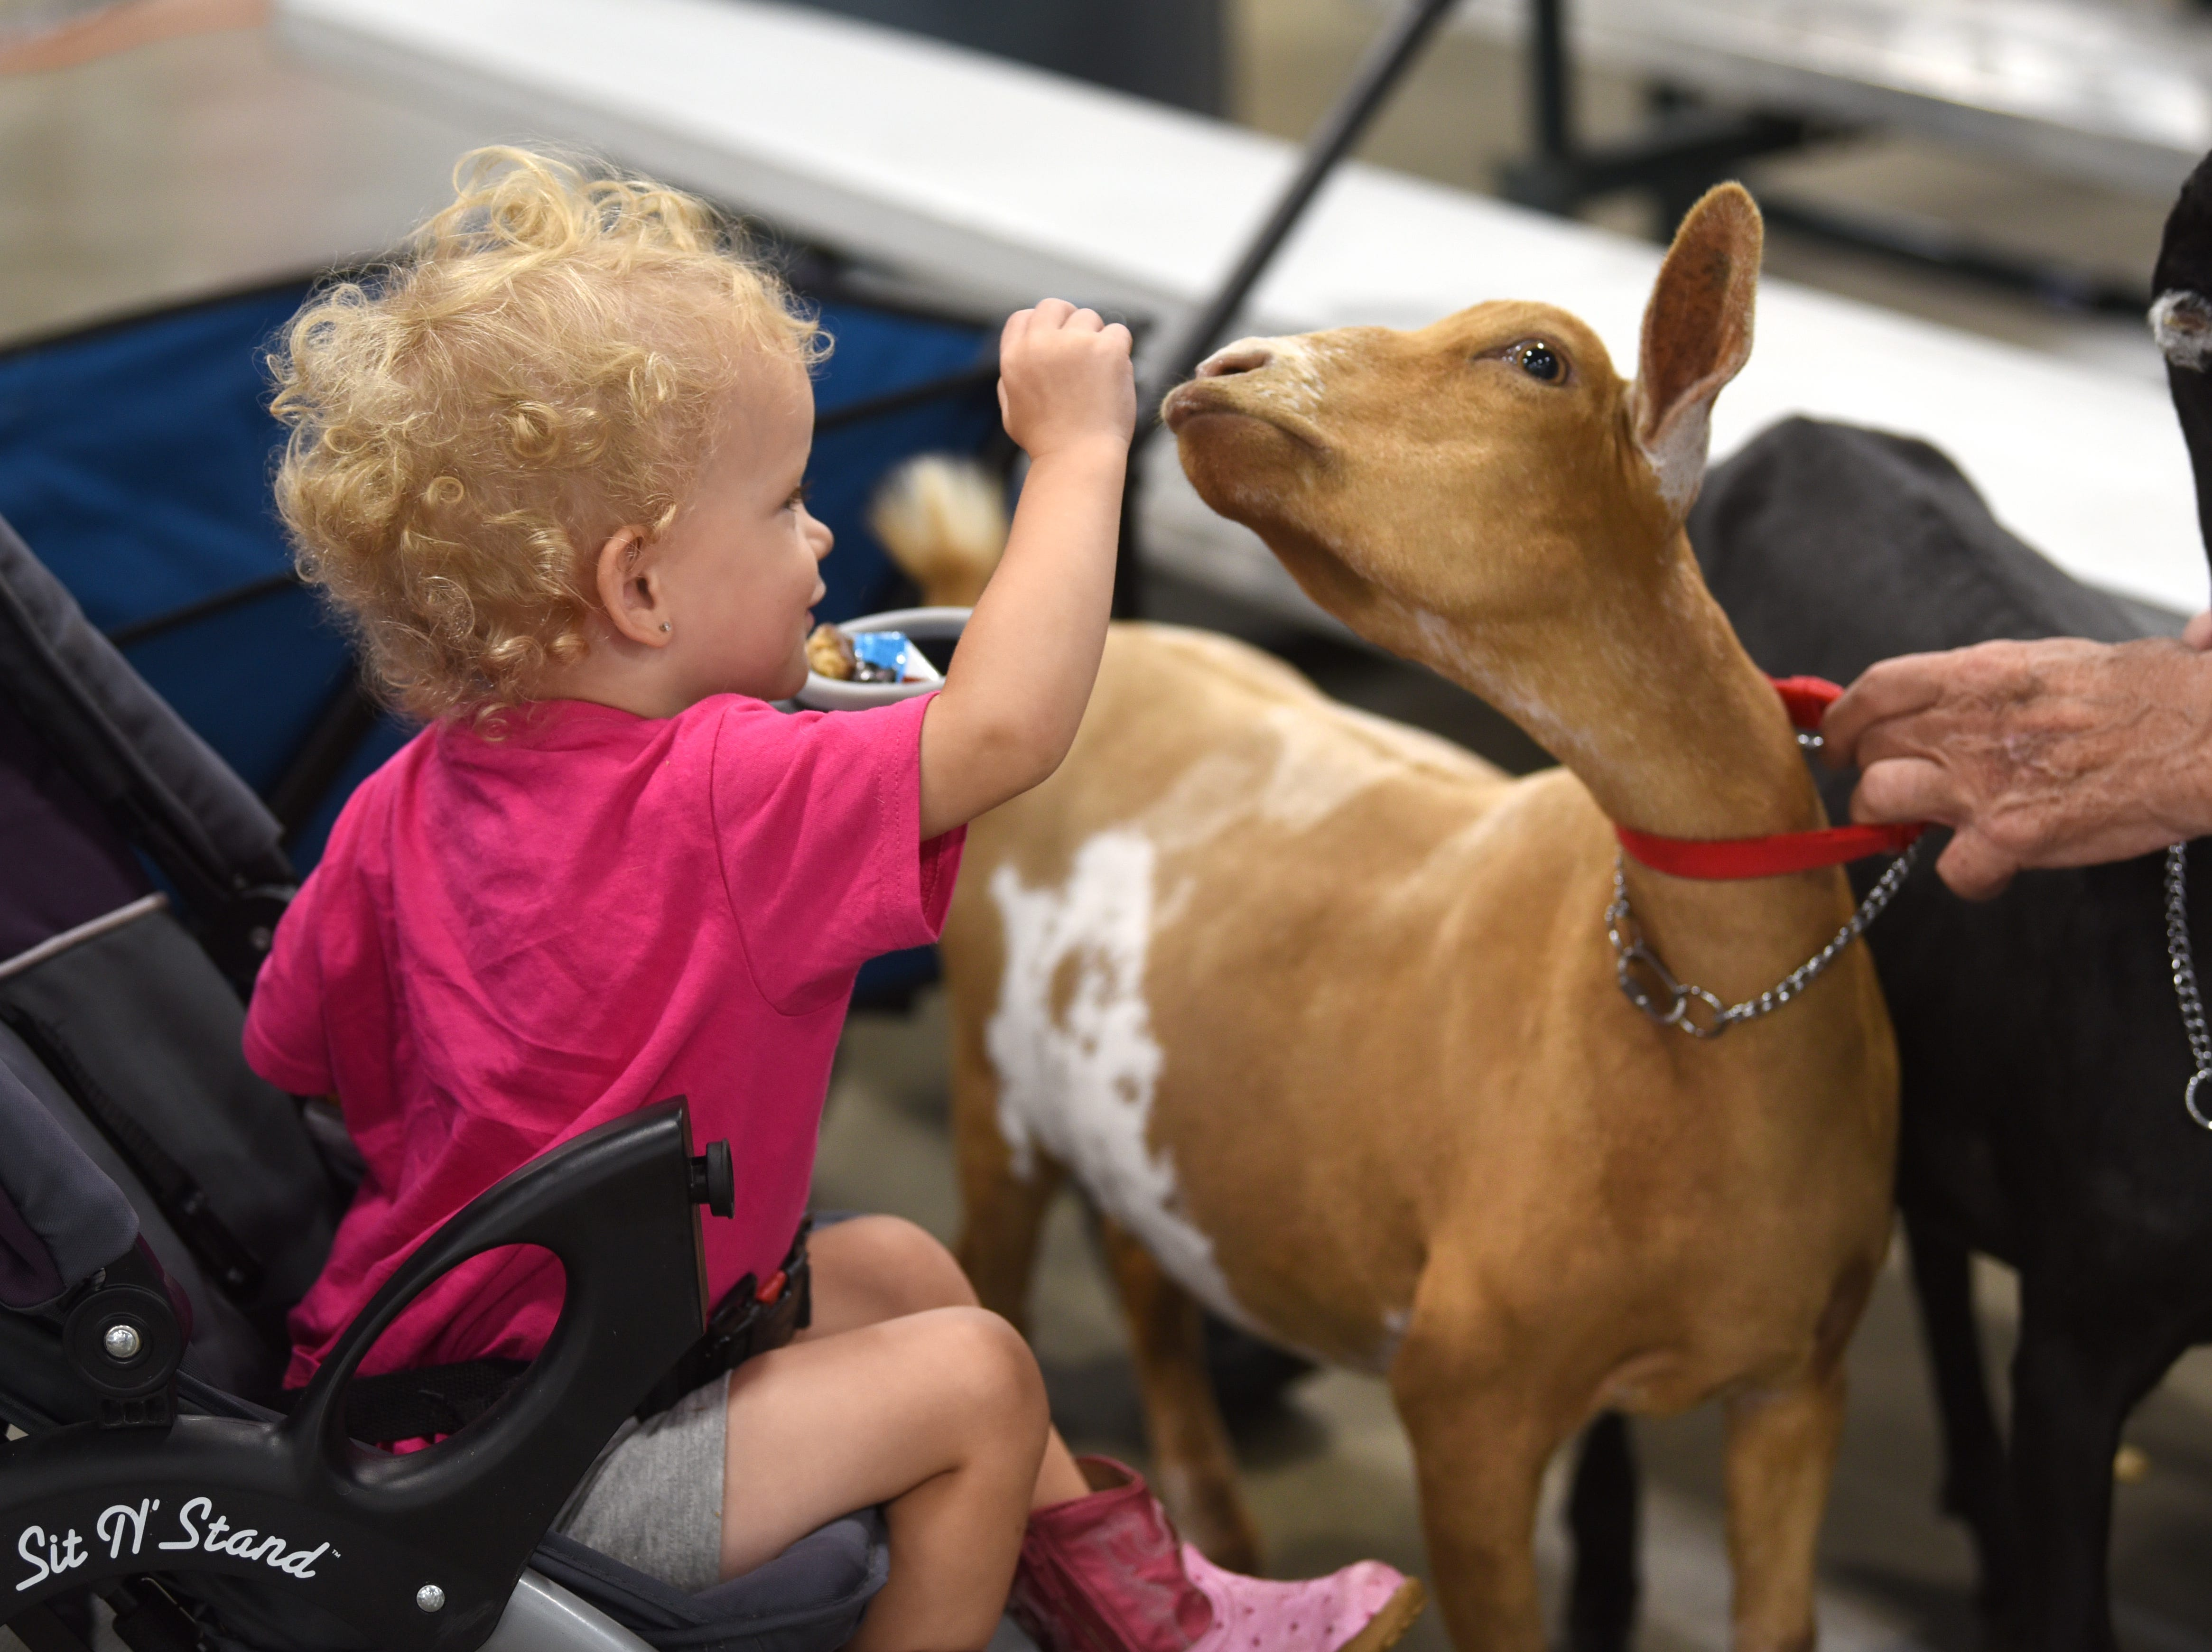 Addison Illian, 2, of Mount Morris, shares a moment with a Nigerian goat at the Michigan State Fair at the Suburban Collection Showplace in Novi on August 30, 2018.